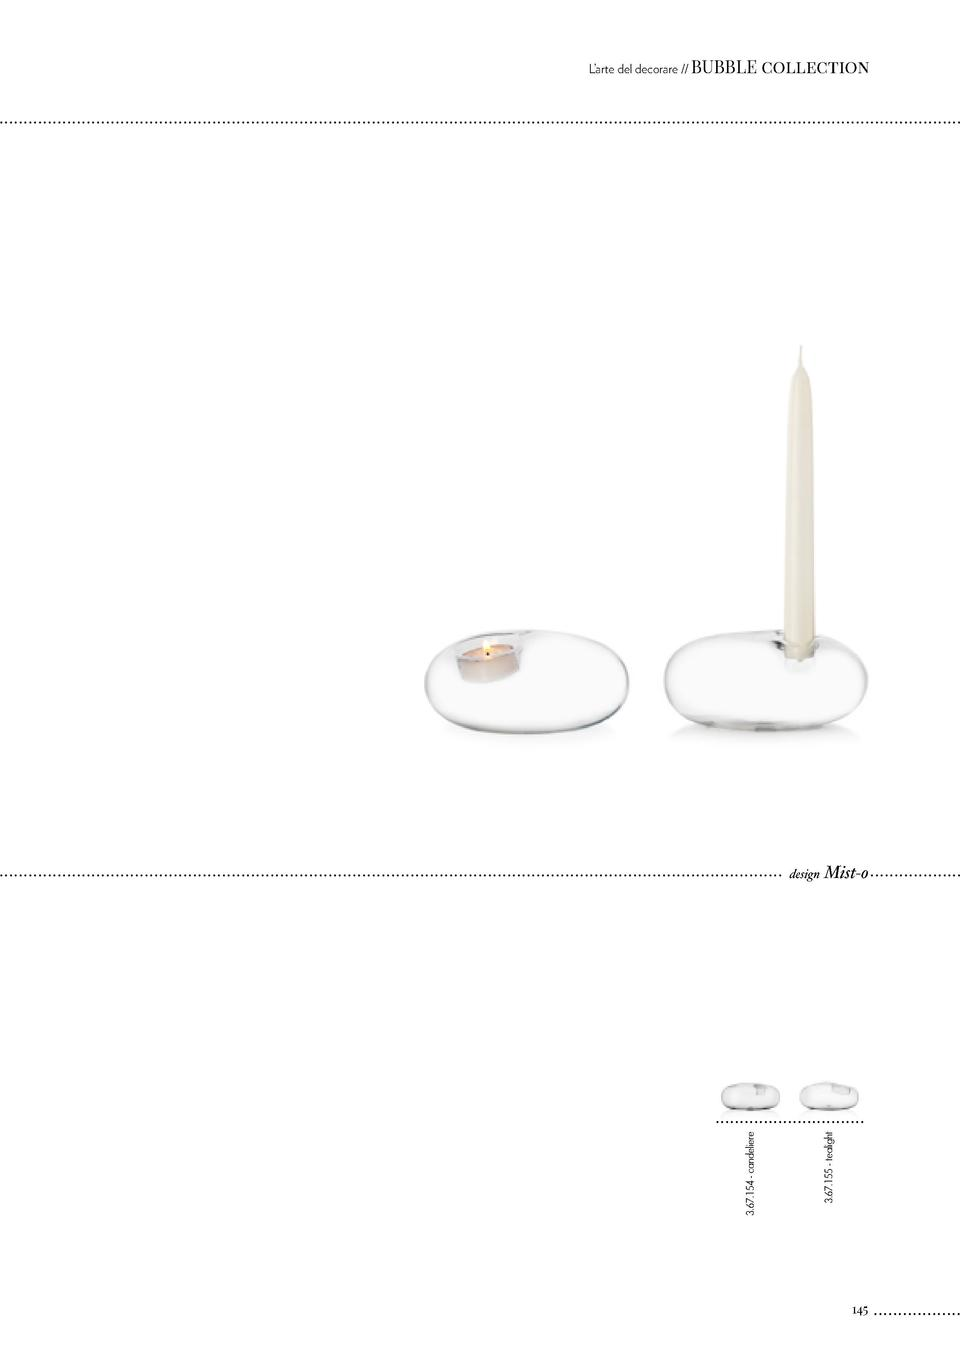 L   arte del decorare    BUBBLE  collection  3.67.155 - tealight  3.67.154 - candeliere  design Mist-o  145